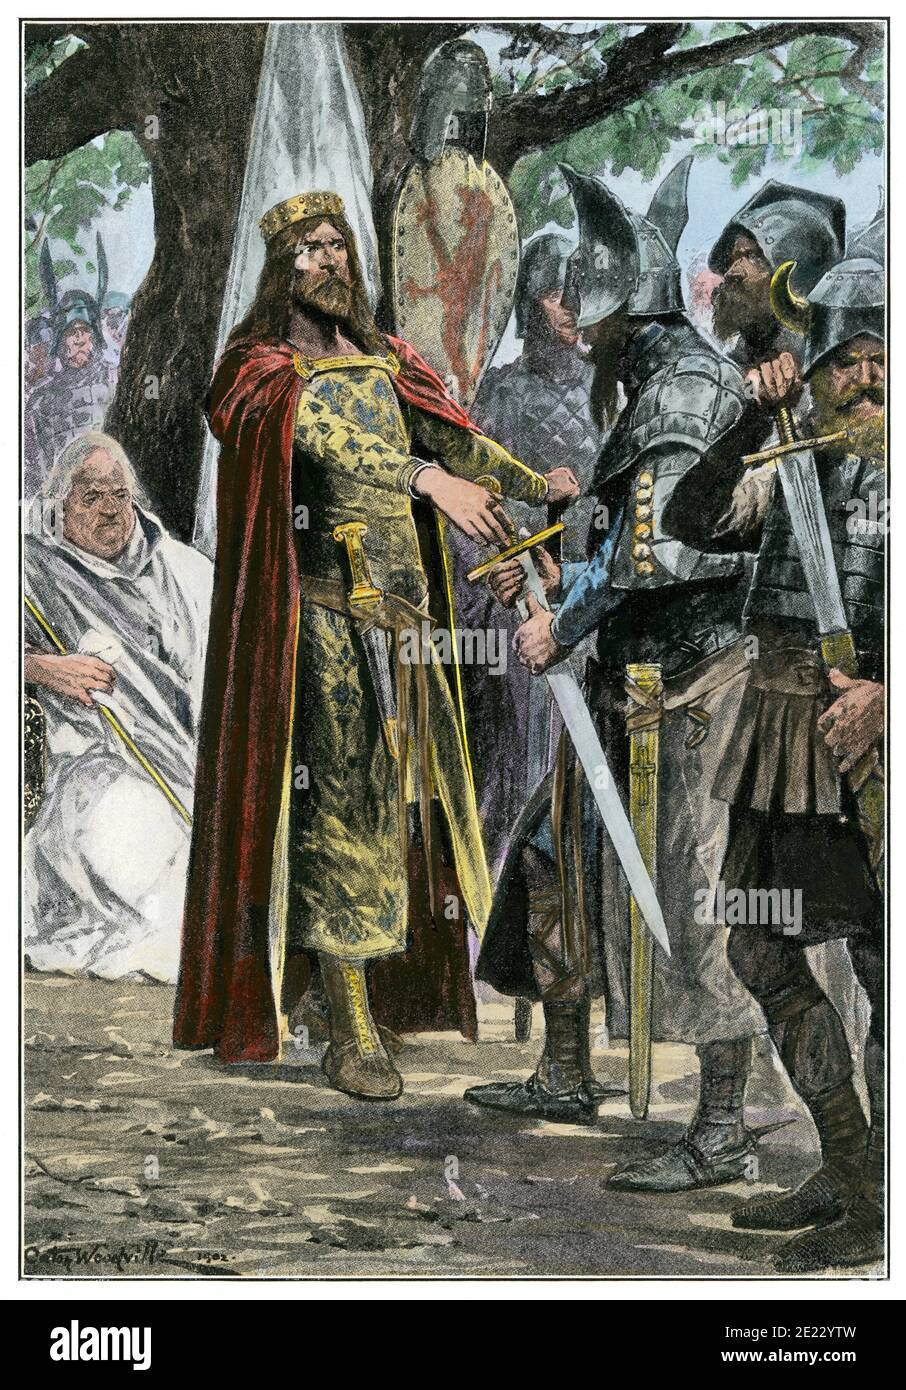 Alfred acknowledged as king of all England. Hand-colored halftone of an illustration Stock Photo